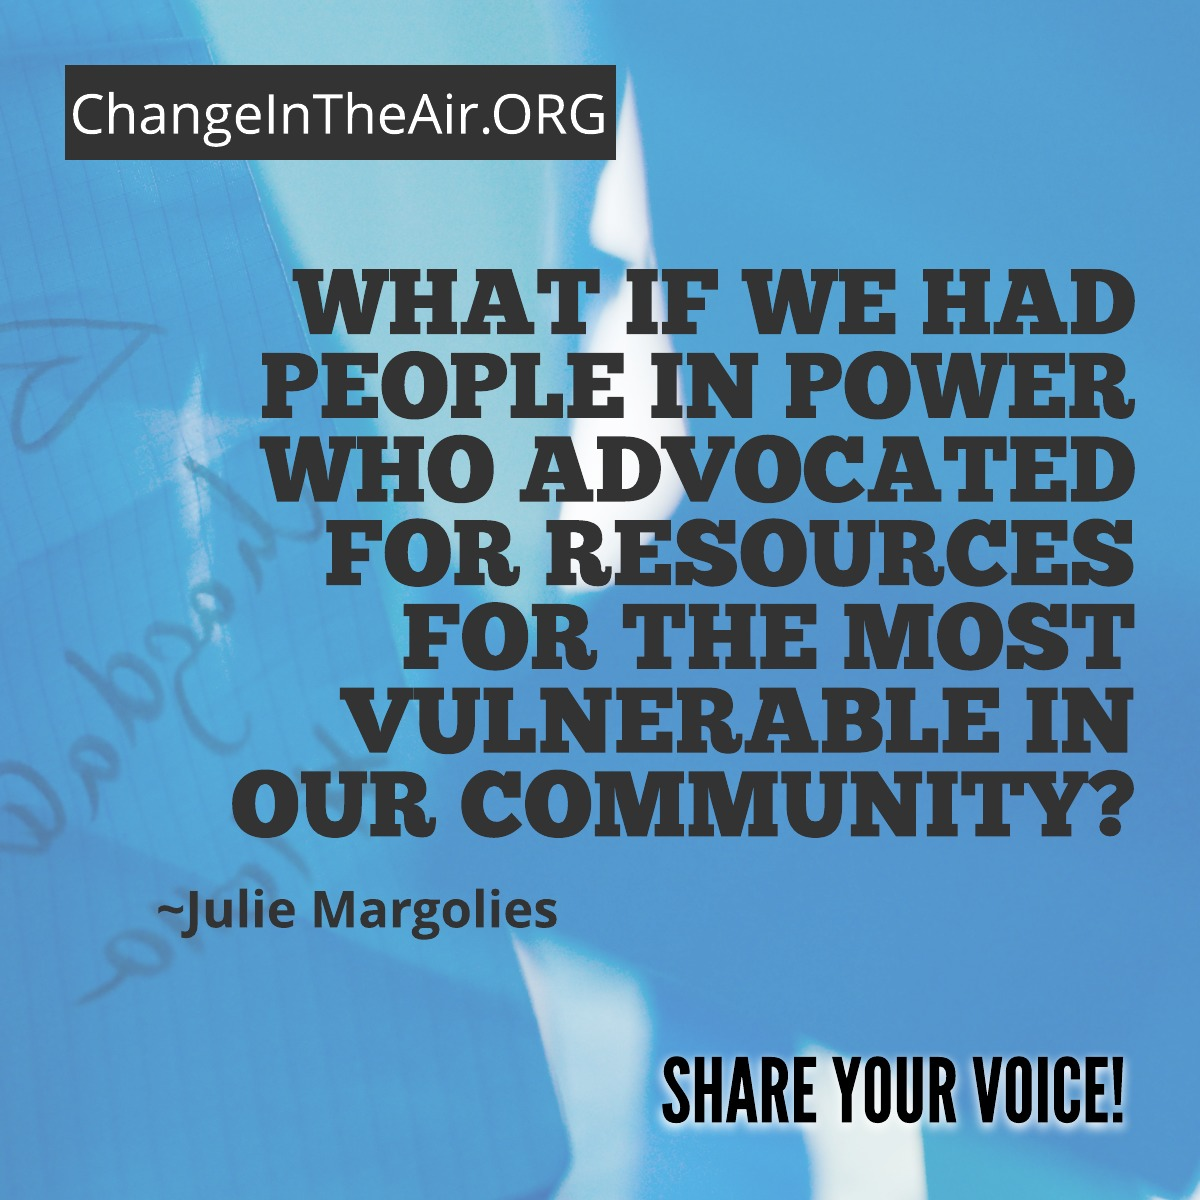 Change in the Air message. What if we had people in power who advocated for resources for the most vulnerable in our community?